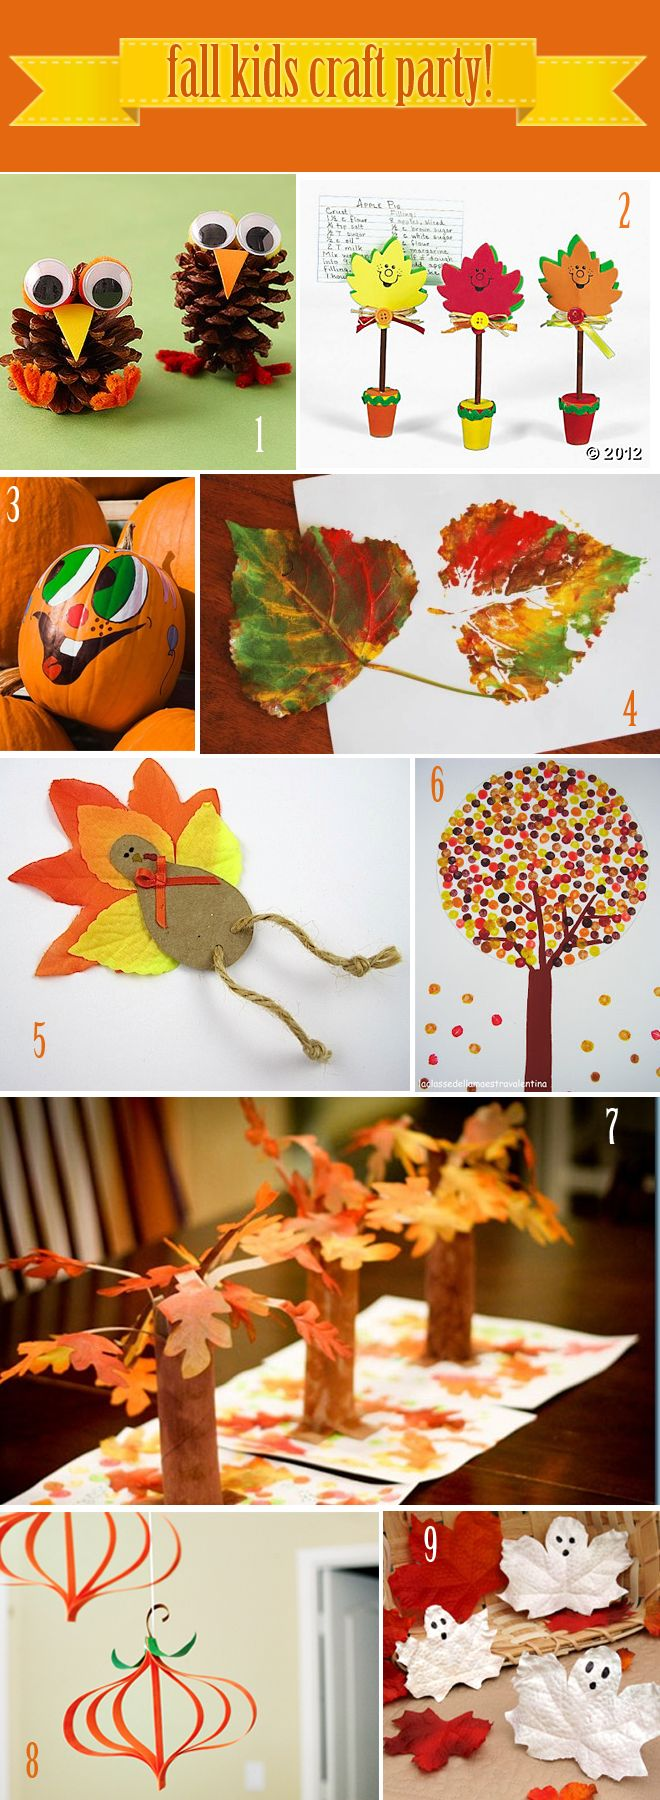 get crafty with the kids!